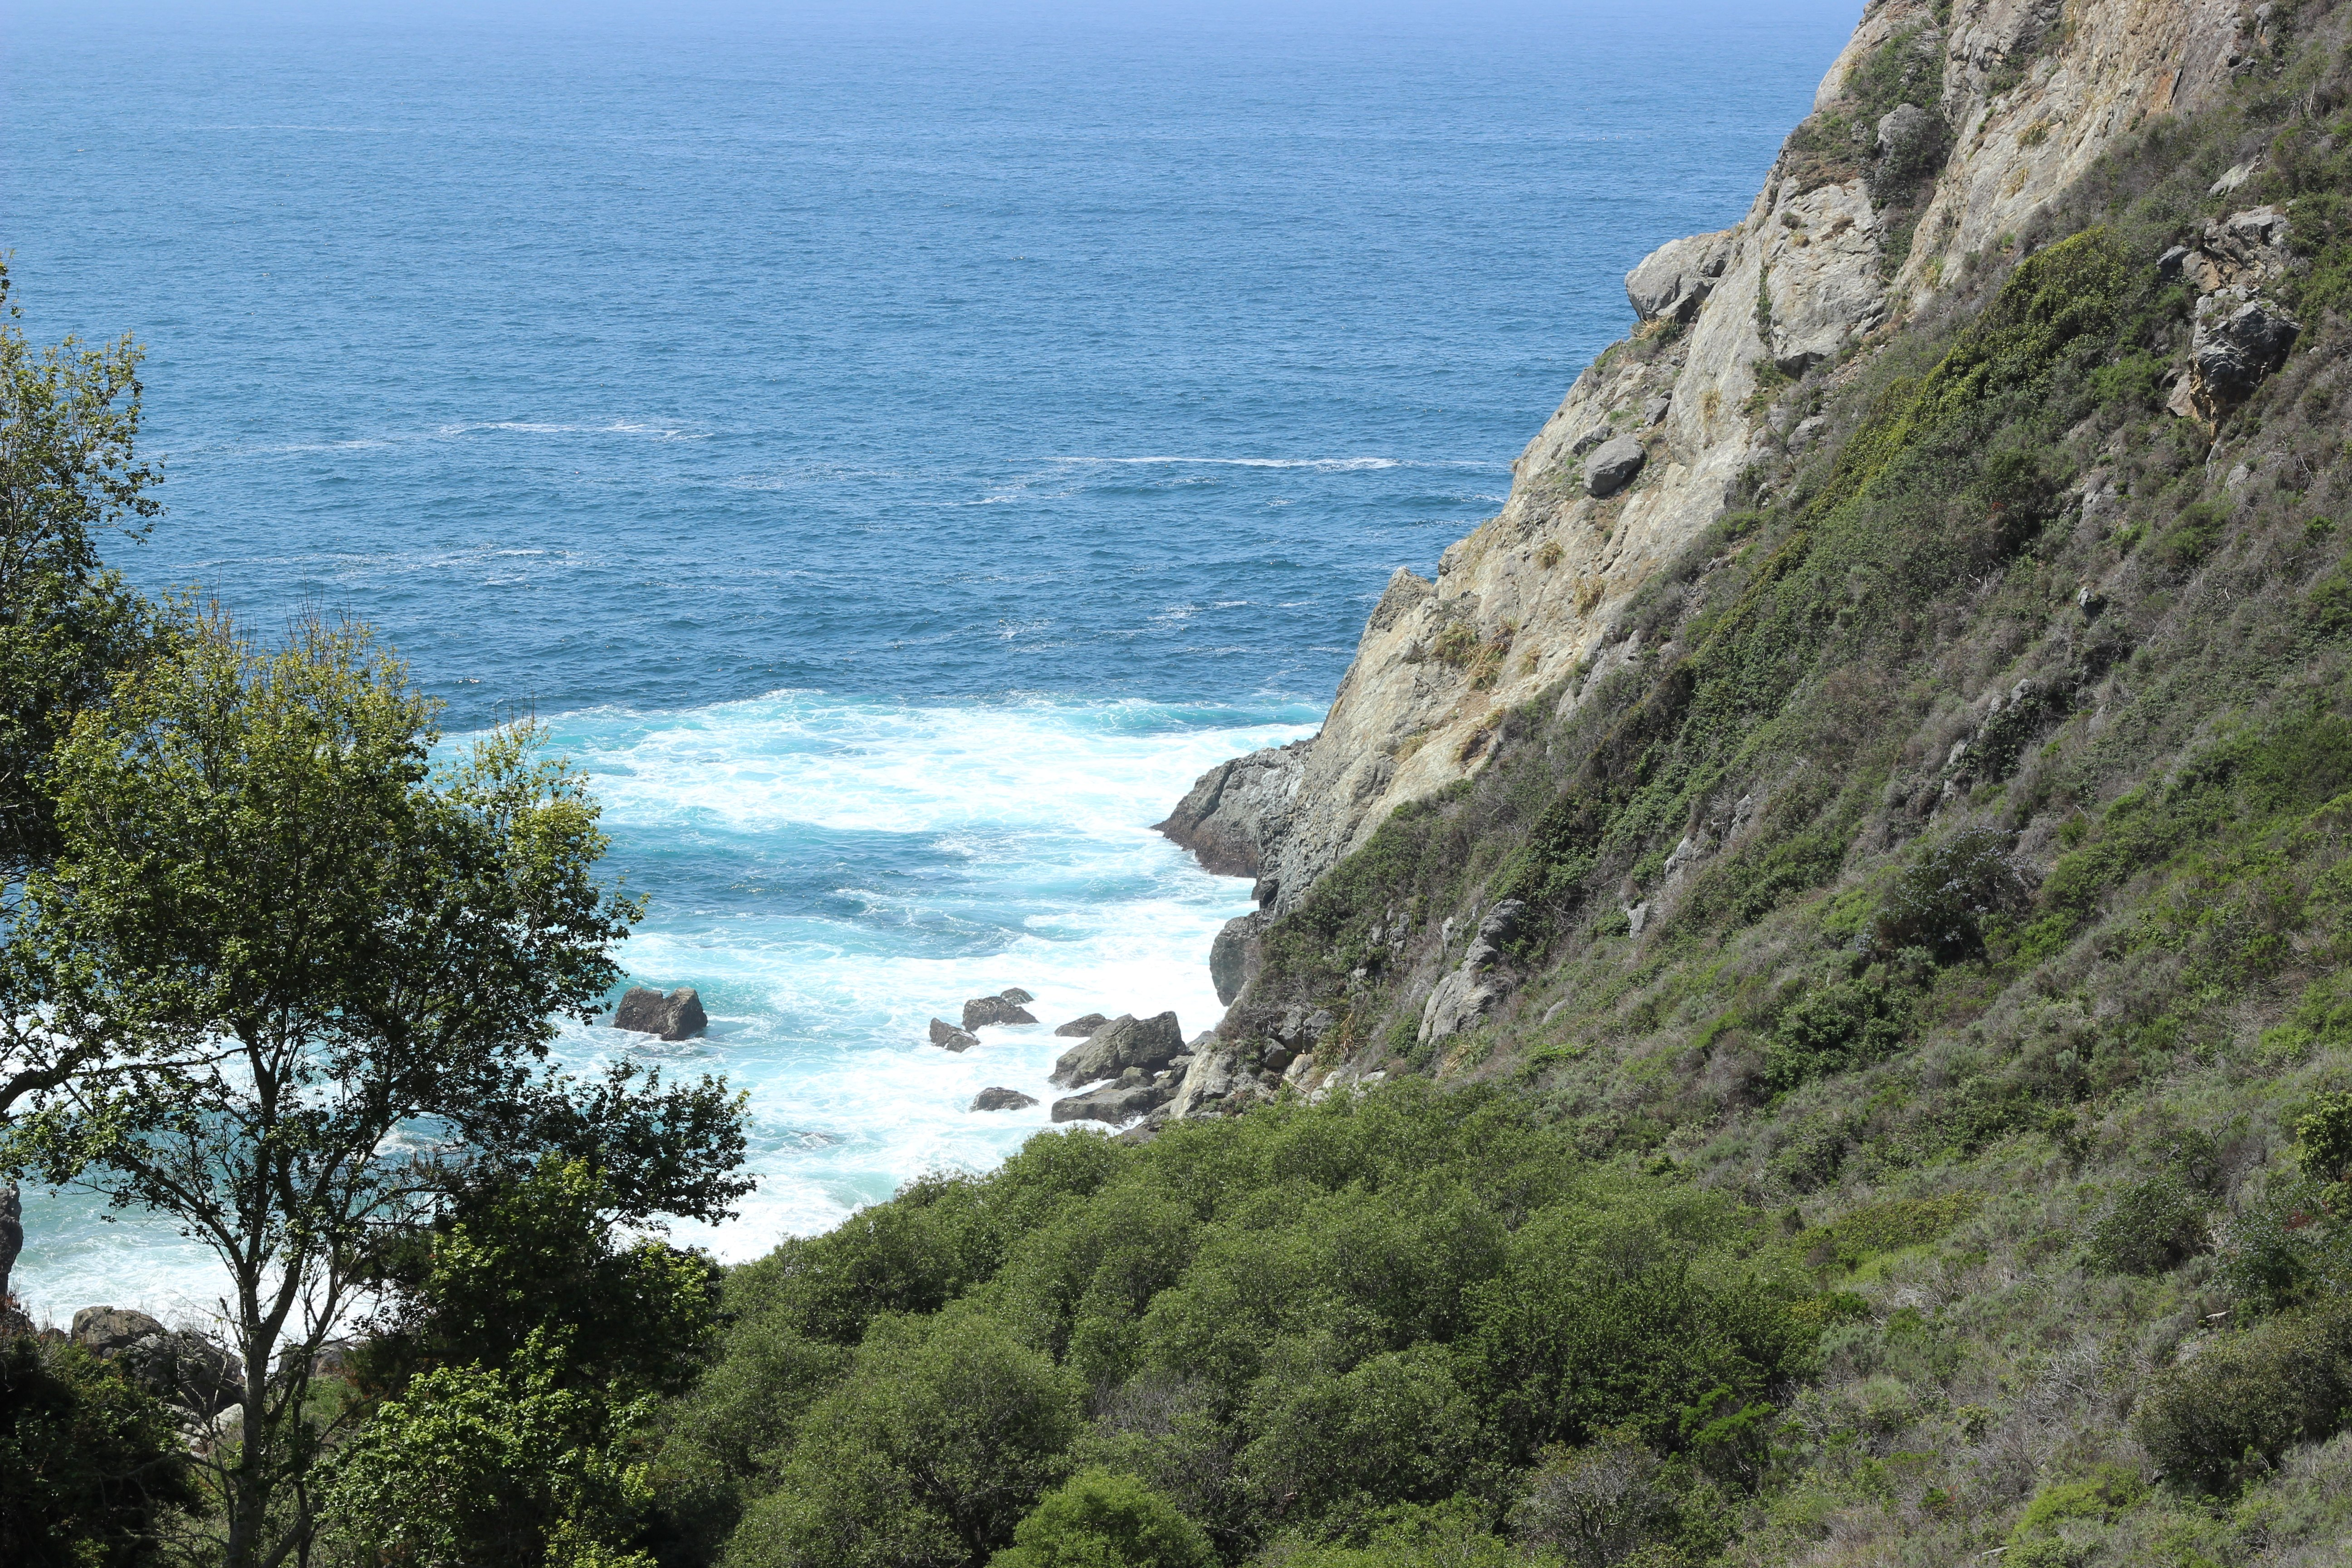 Partington cove from Hwy 1